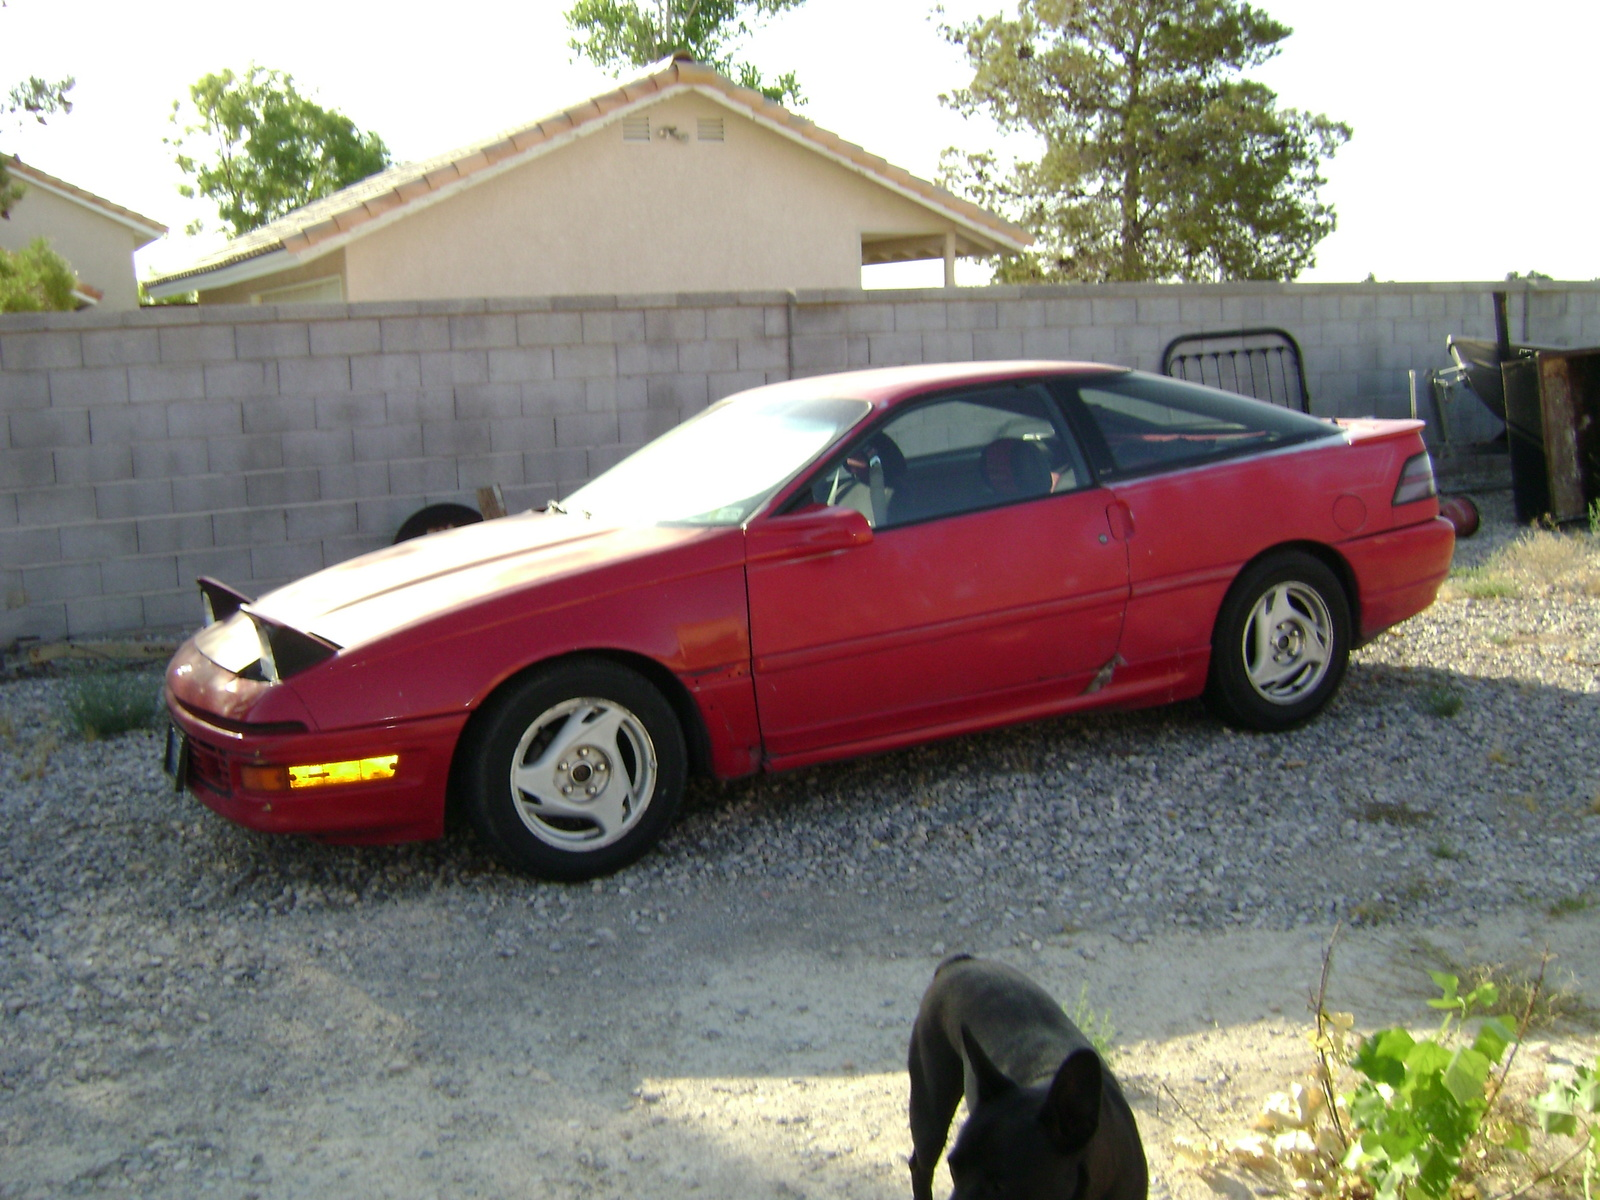 Photos Of Ford Probe Gt Photo Galleries On Flipacars